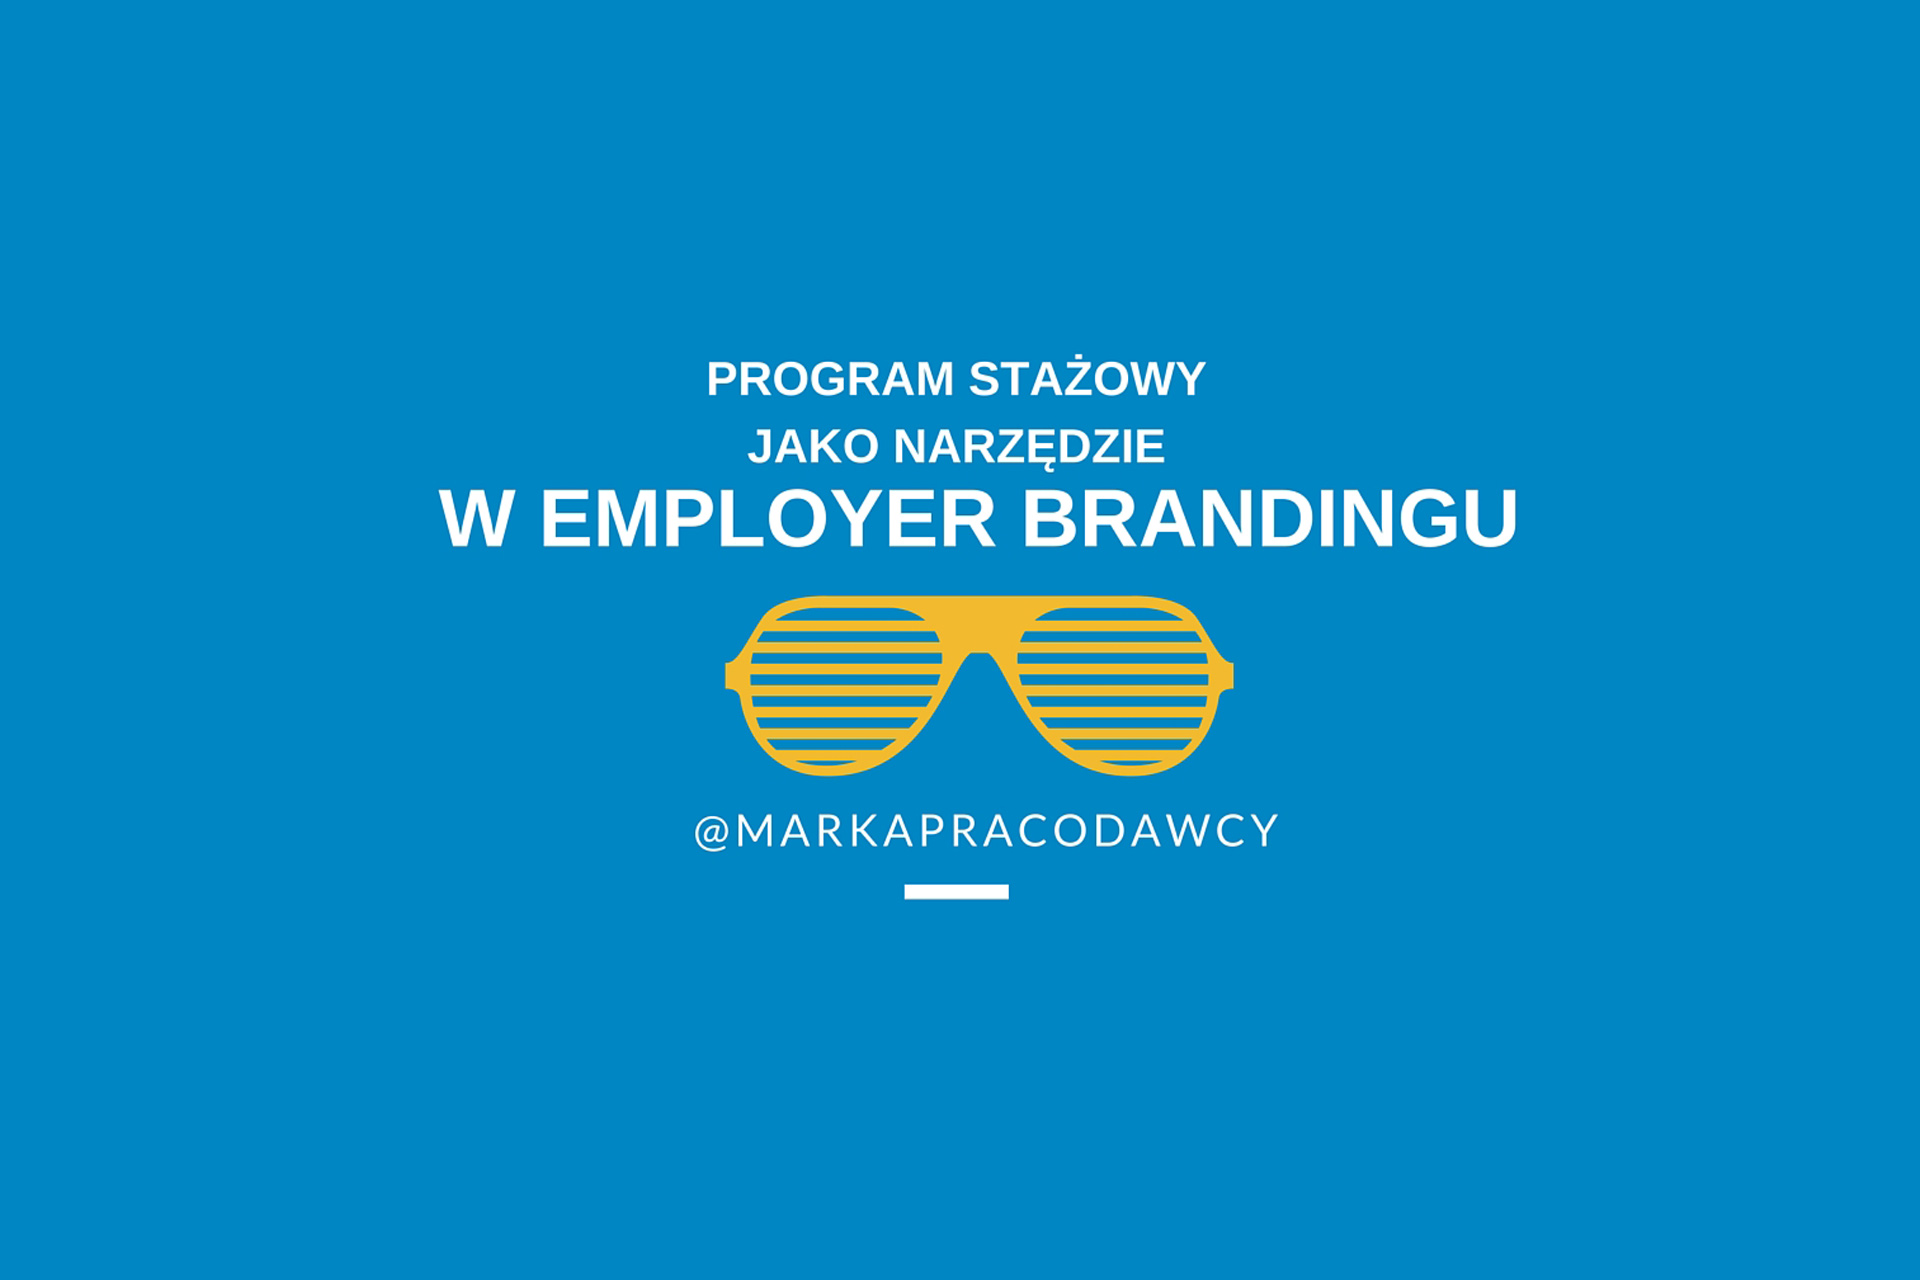 staż program a employer branding